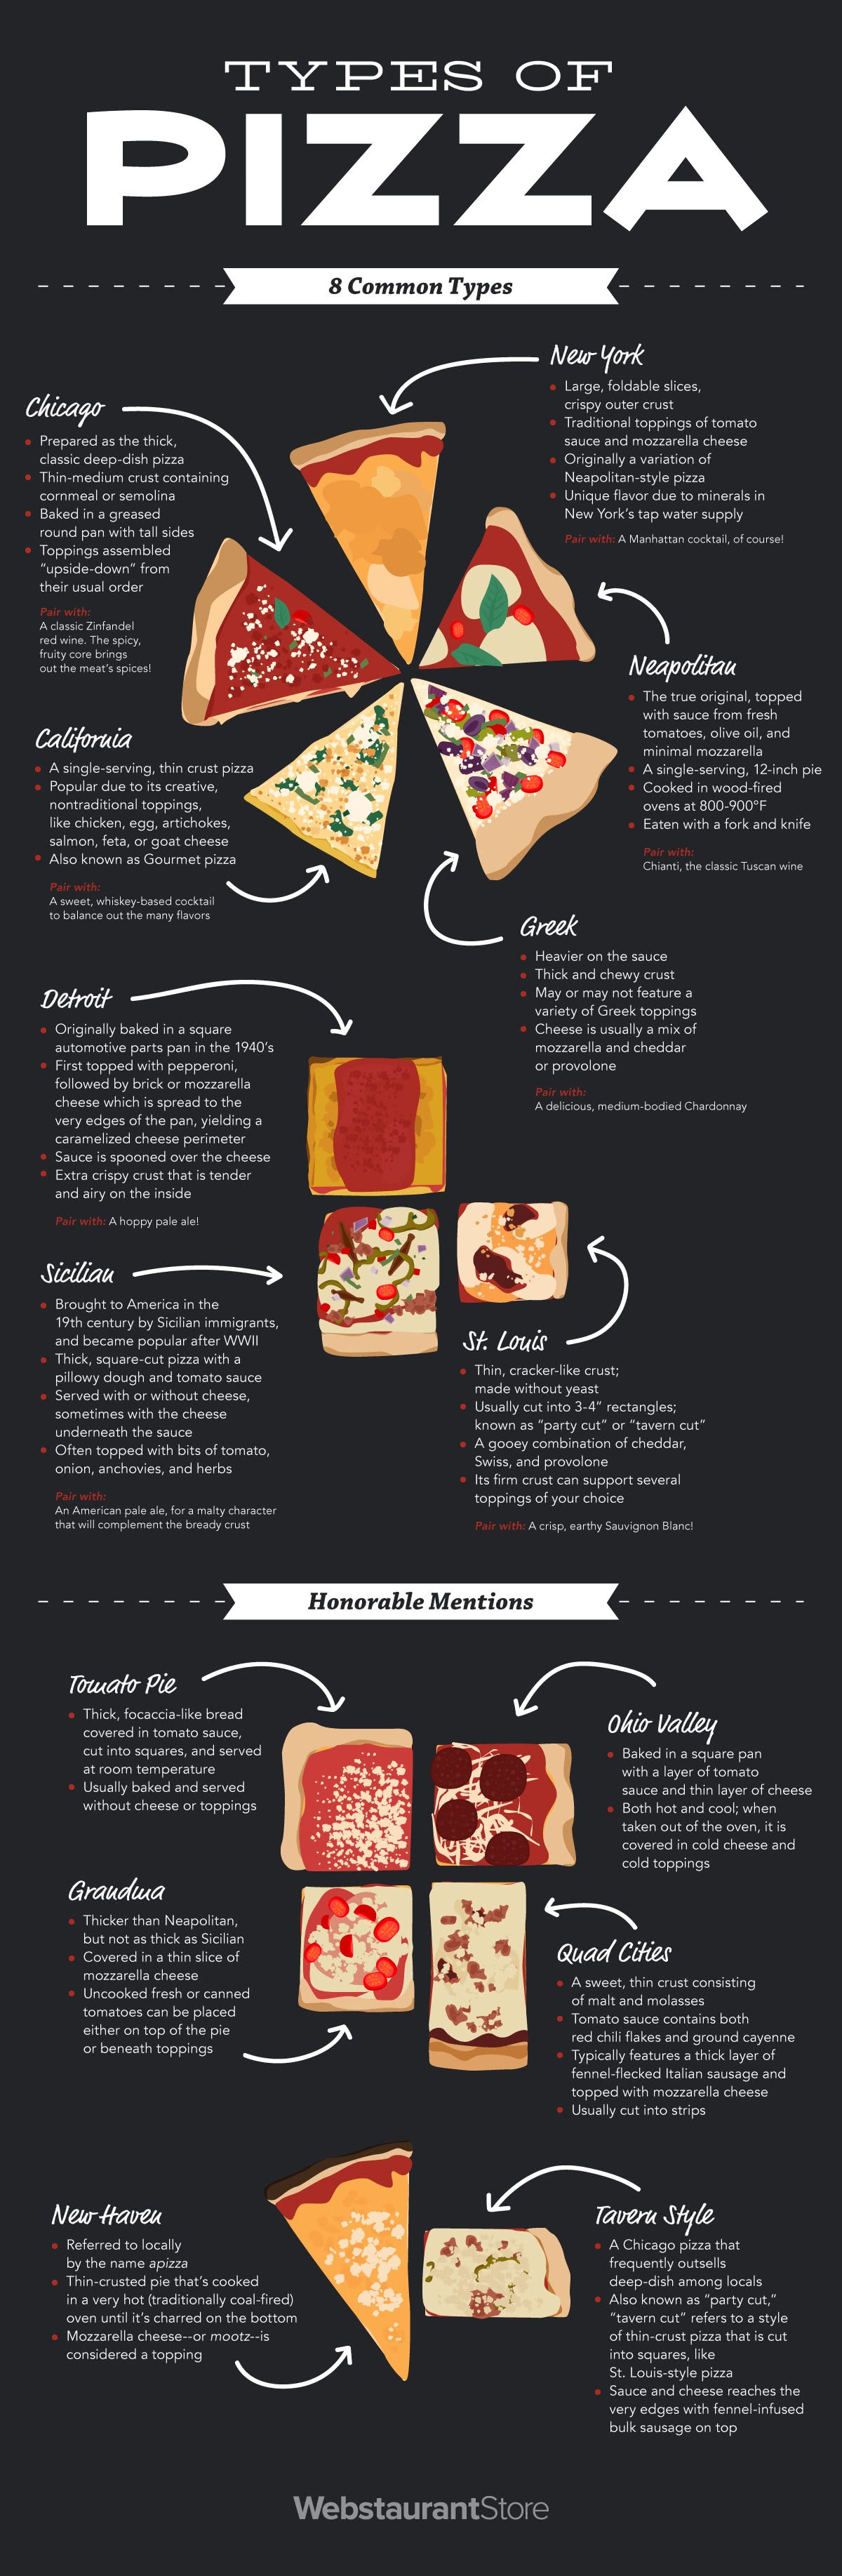 Types Of Pizza Pizza Crust Styles The Definitive Guide